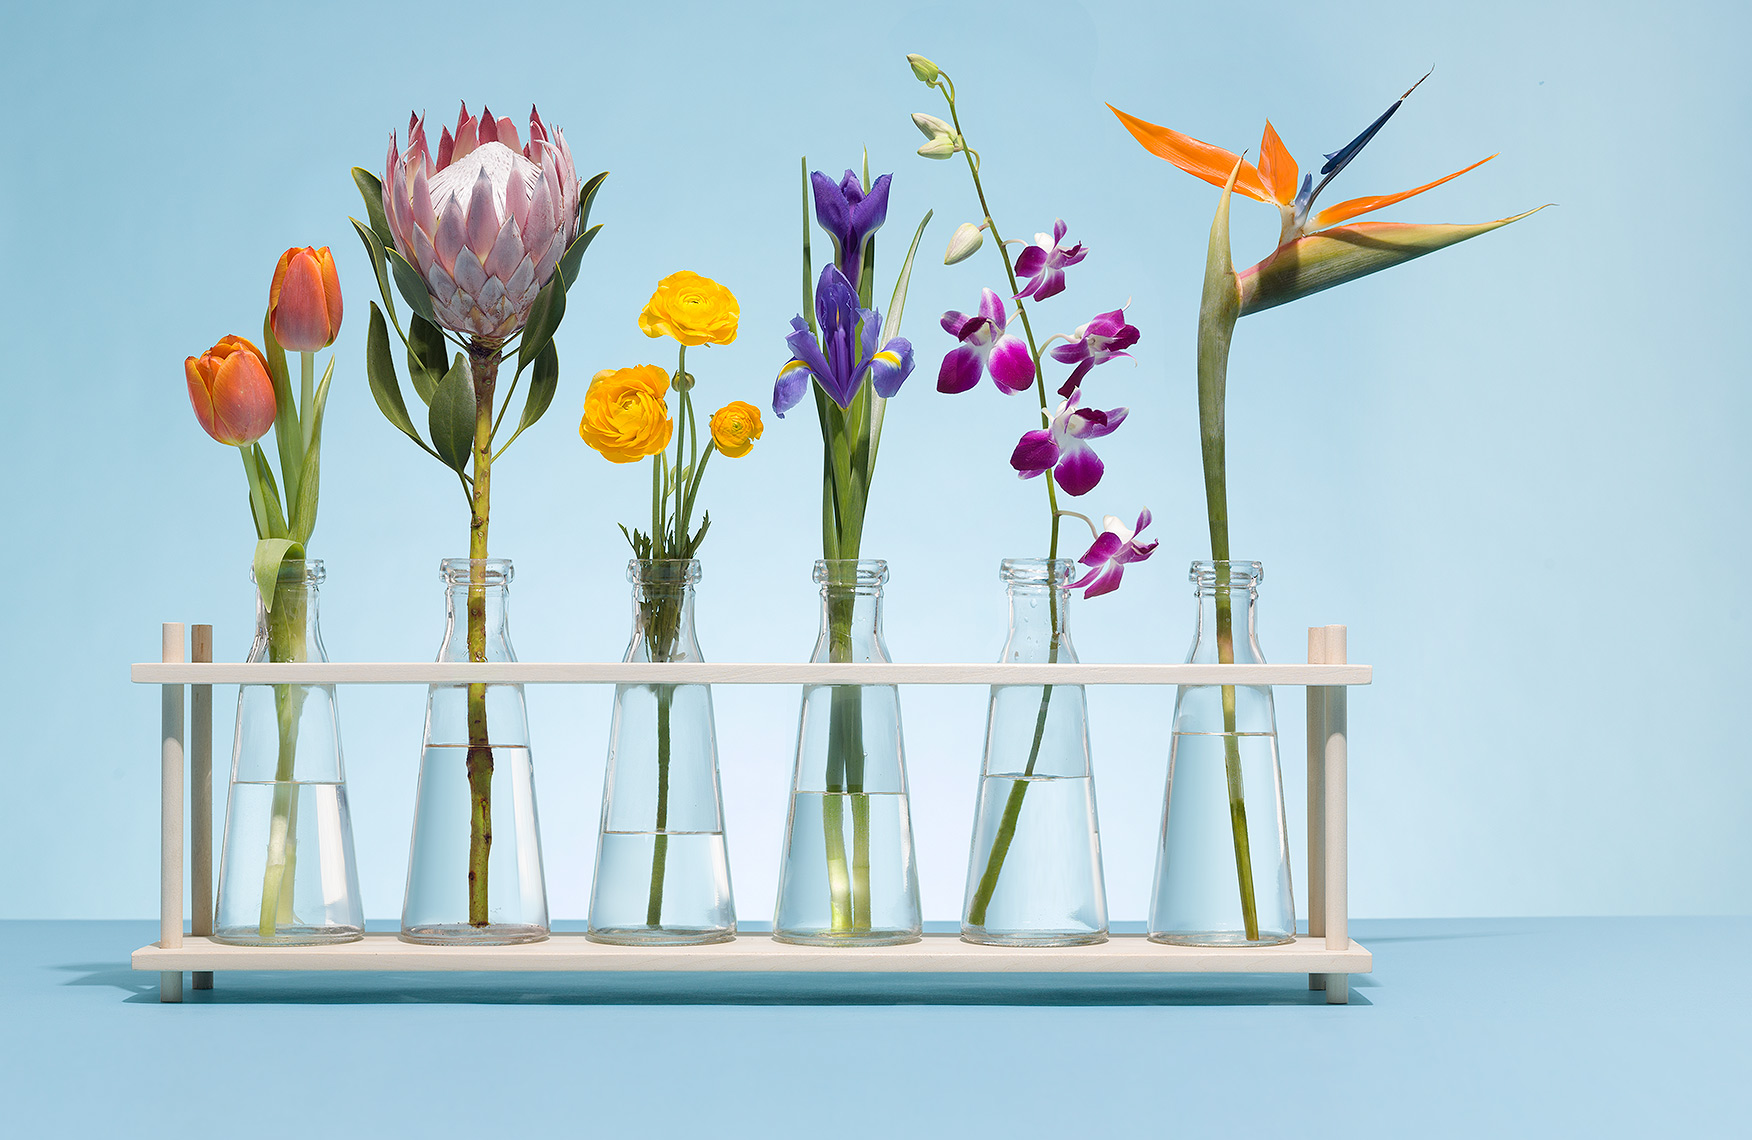 Diverse and beautiful flowers in beakers photo by John Kuczala